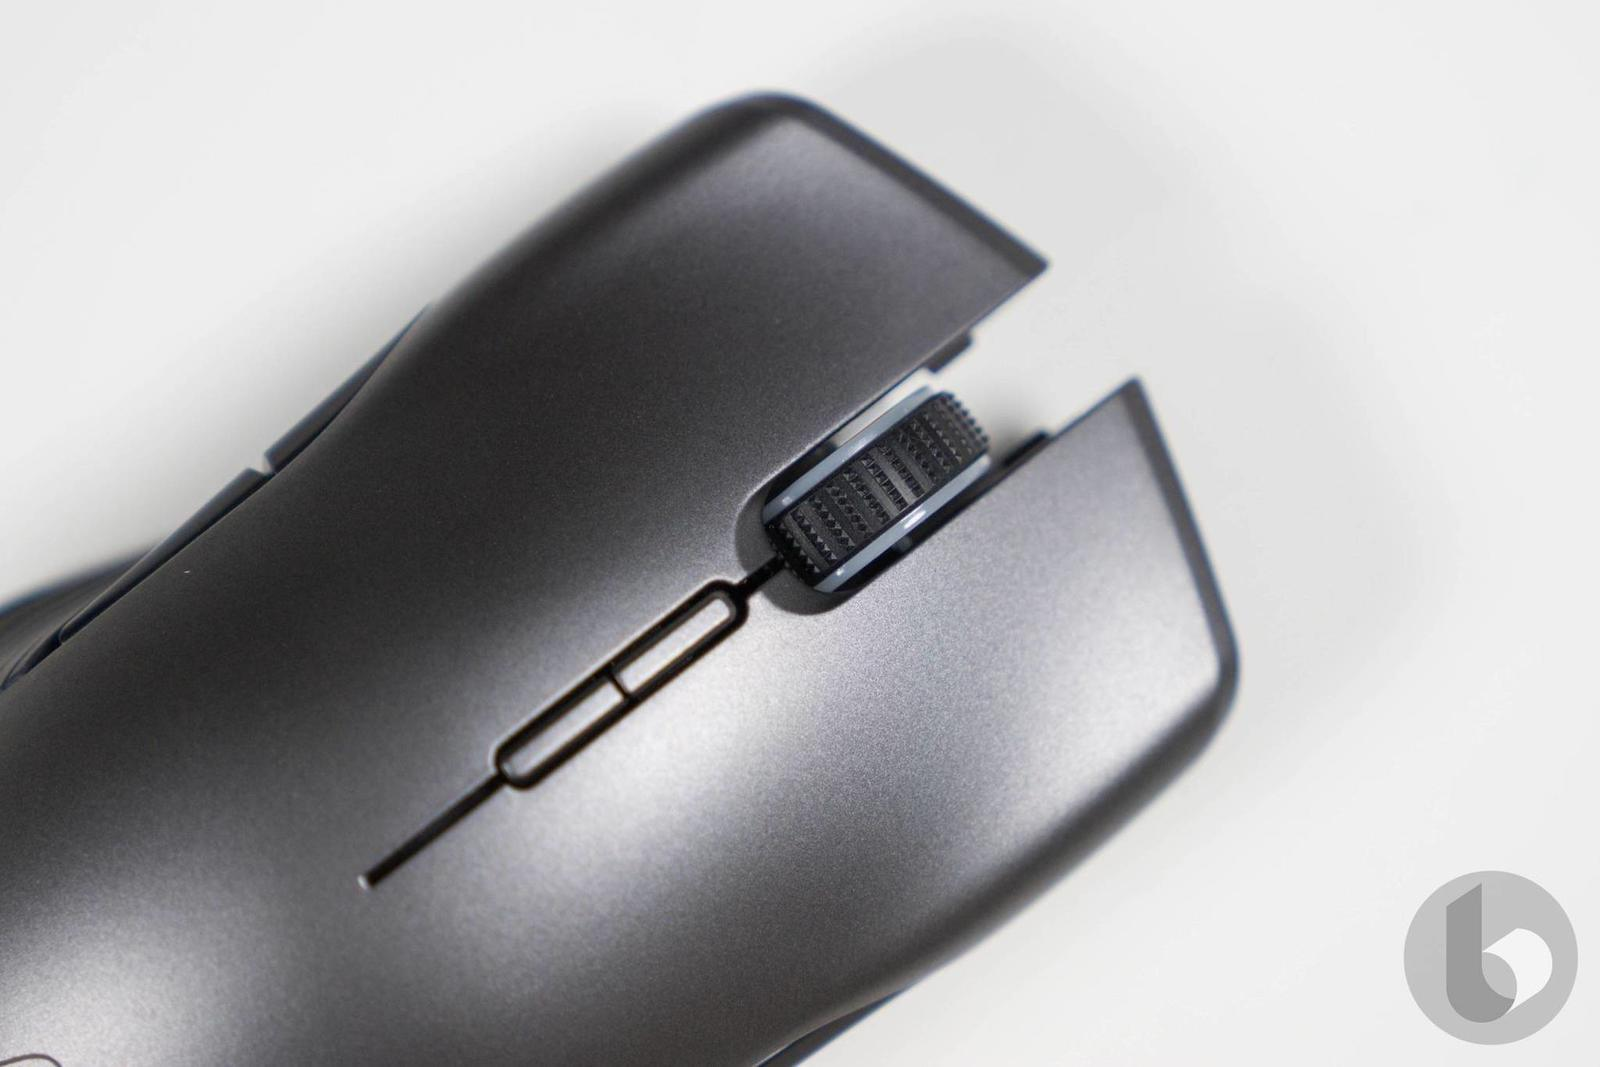 Razer Lancehead review: The world's most advanced wireless mouse